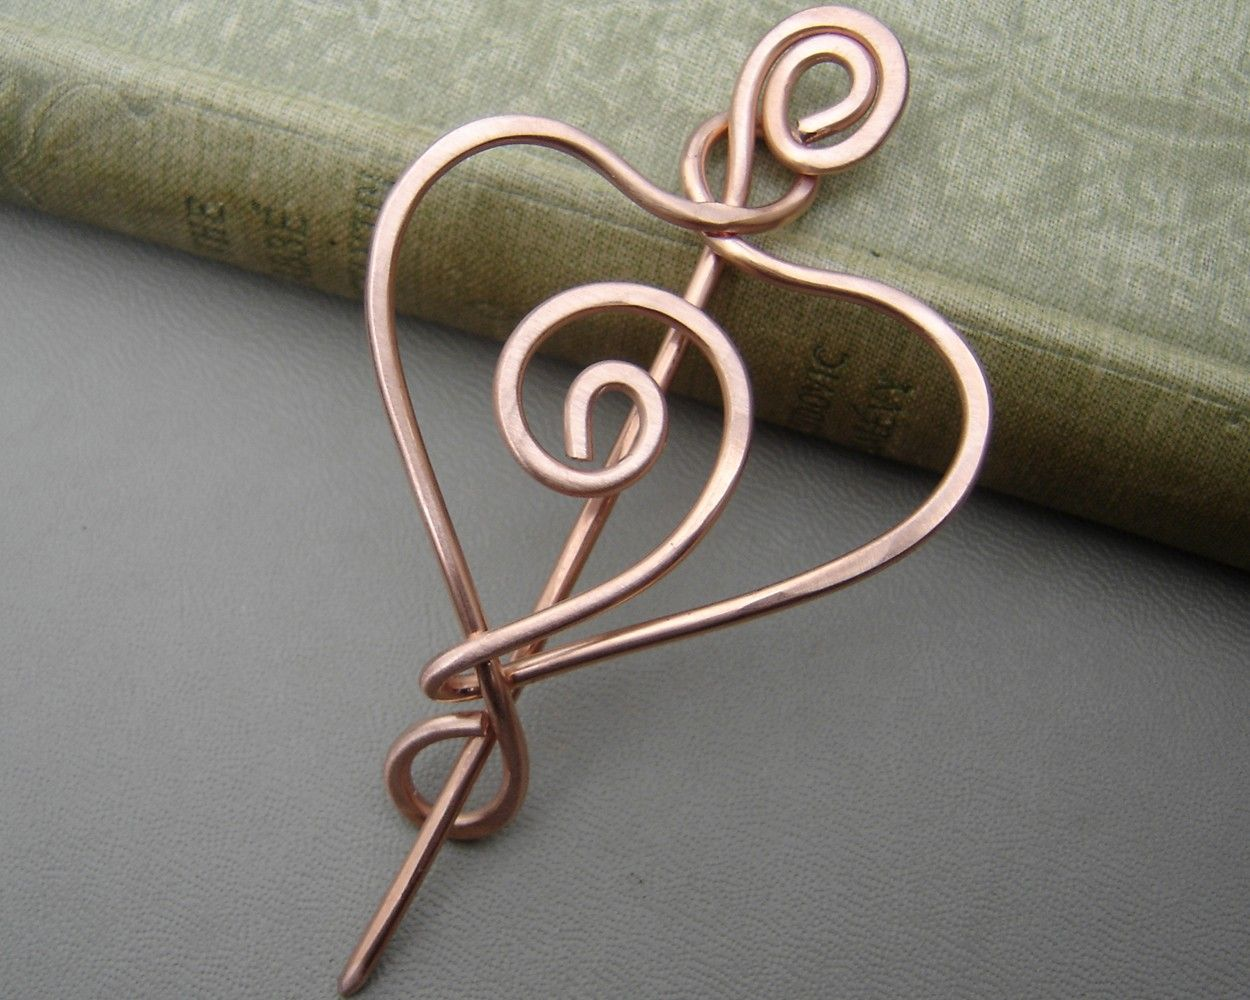 Spiral Heart Copper Shawl Pin, Scarf Pin, Sweater Fastener, Shrug ...